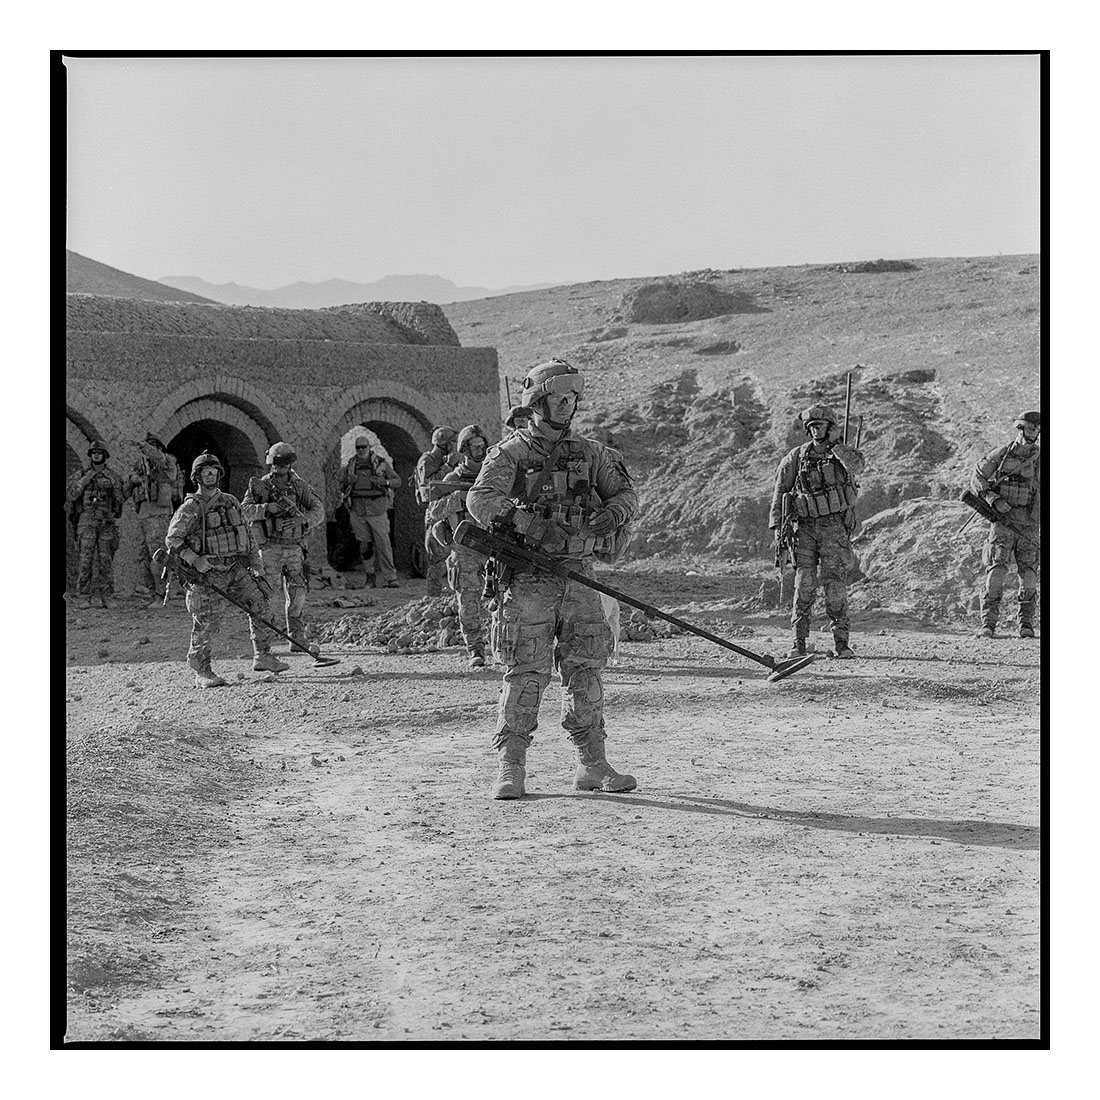 Start of Patrol   (2011) Archival pigment prints on Ilford paper 40cm x 40cm | Edition of 25 + 3 Artist Proofs 100cm x 100cm | Edition of 10 + 3 Artist Proofs